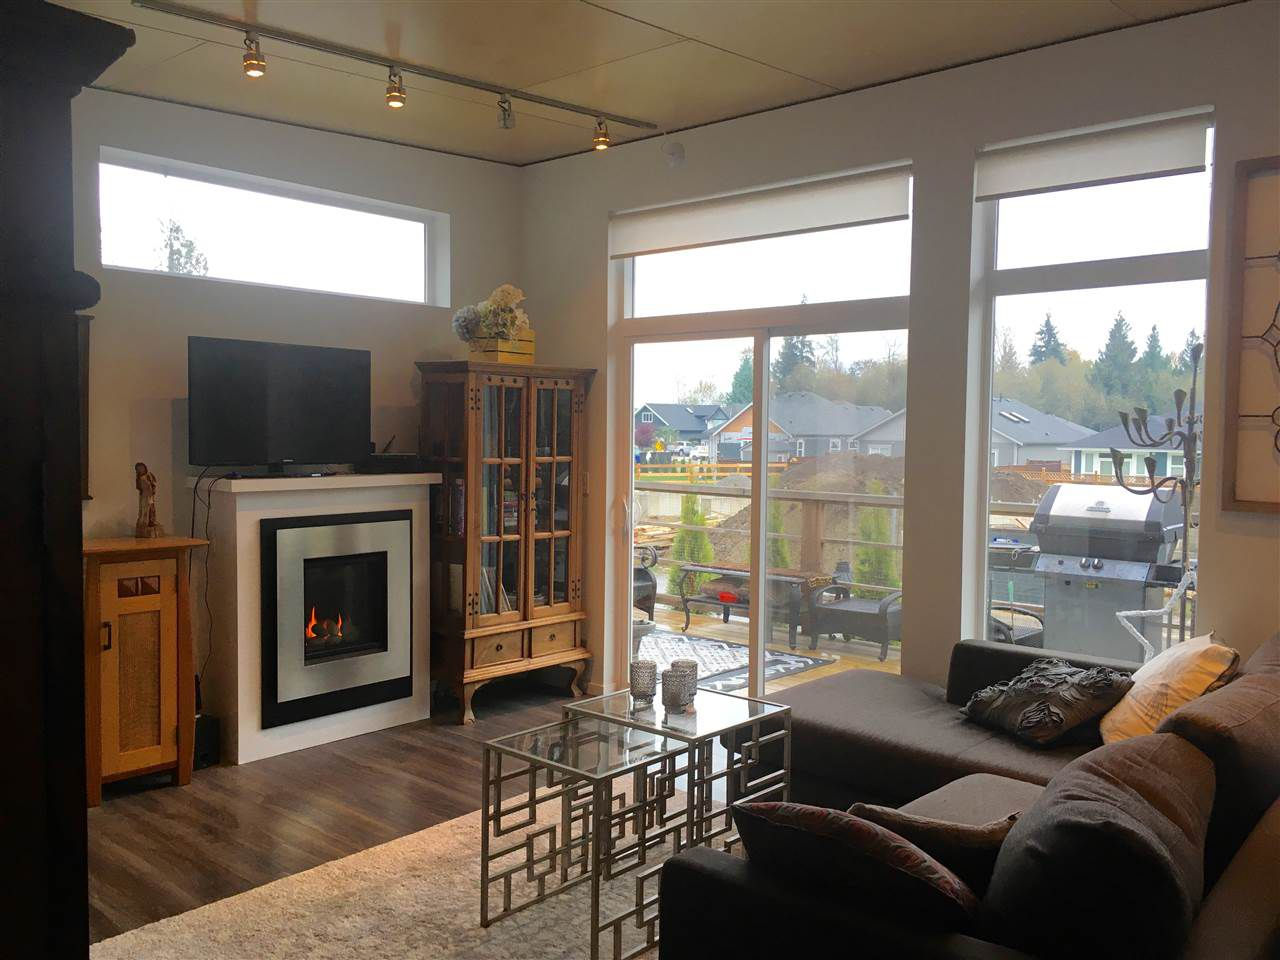 Photo 11: Photos: 892 TROWER Lane in Gibsons: Gibsons & Area House for sale (Sunshine Coast)  : MLS®# R2221931